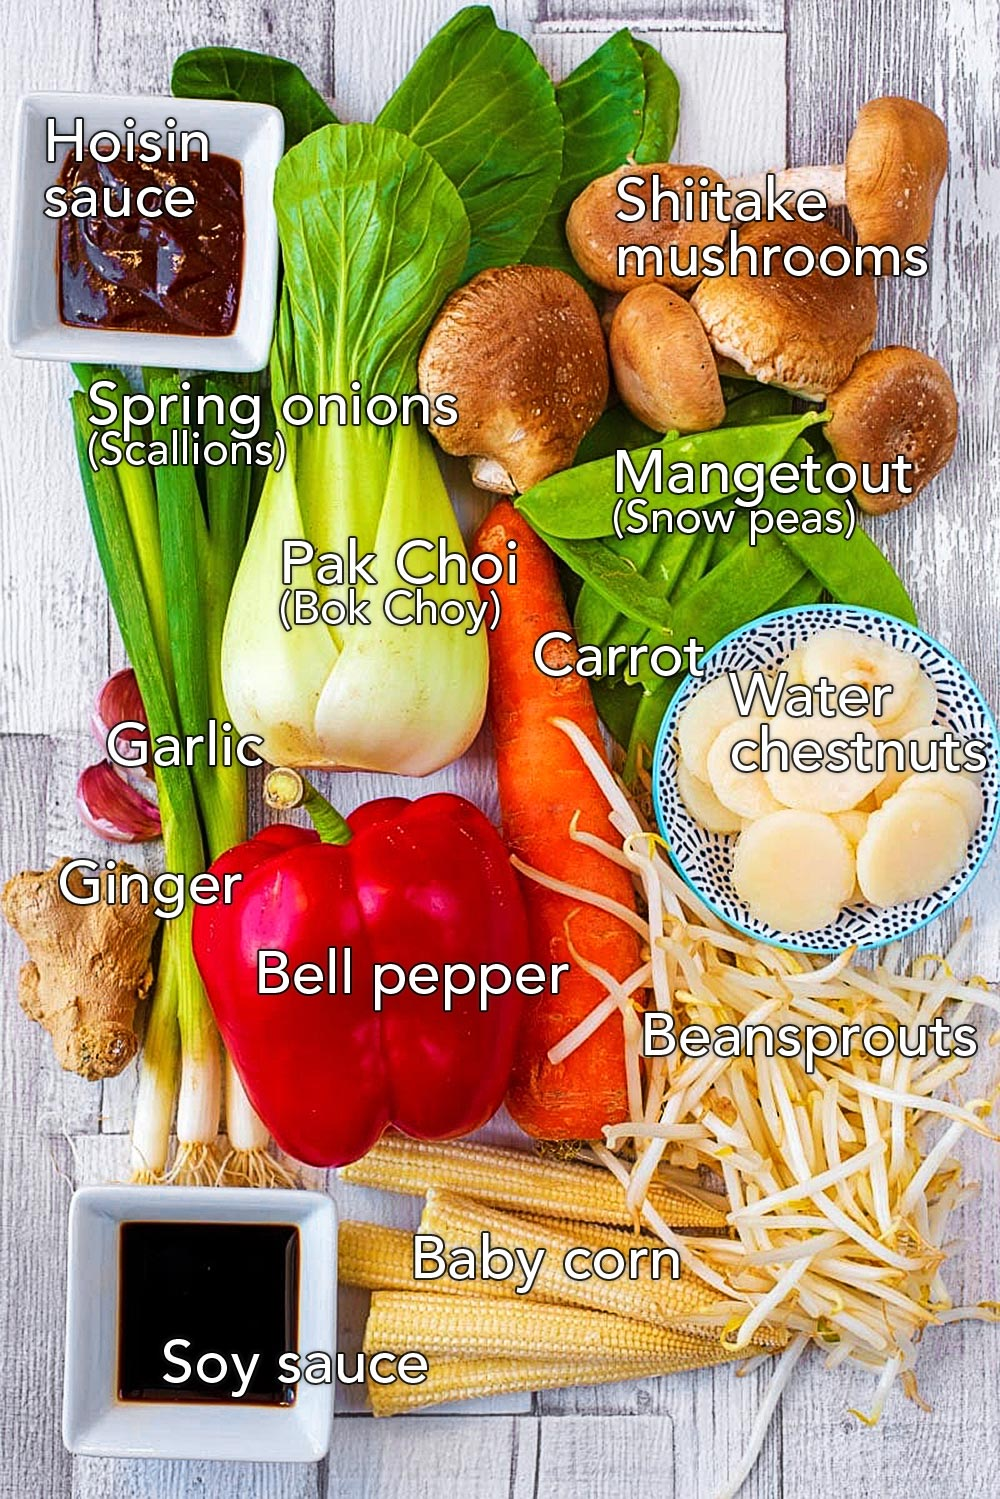 A selection of vegetables spread across a wooden surface